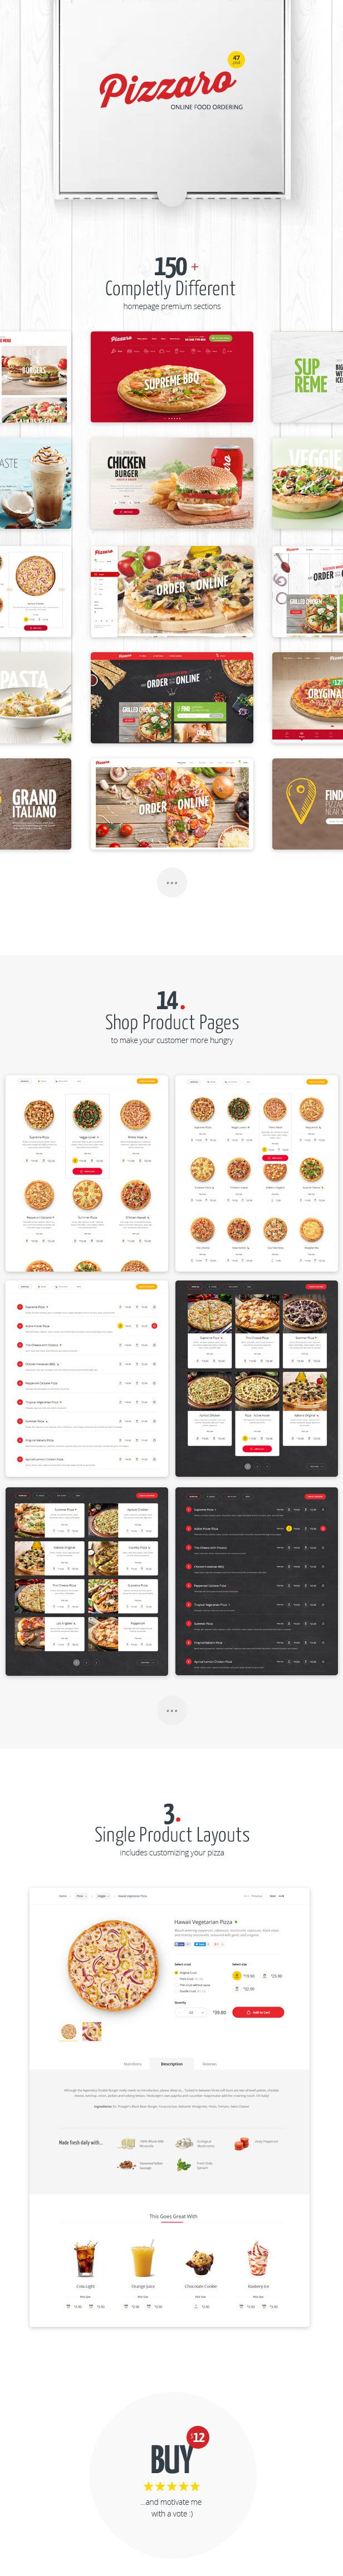 Pizzaro – Meals On-line Ordering eCommerce PSD #On-line, #Meals, #Pizzaro, #PSD